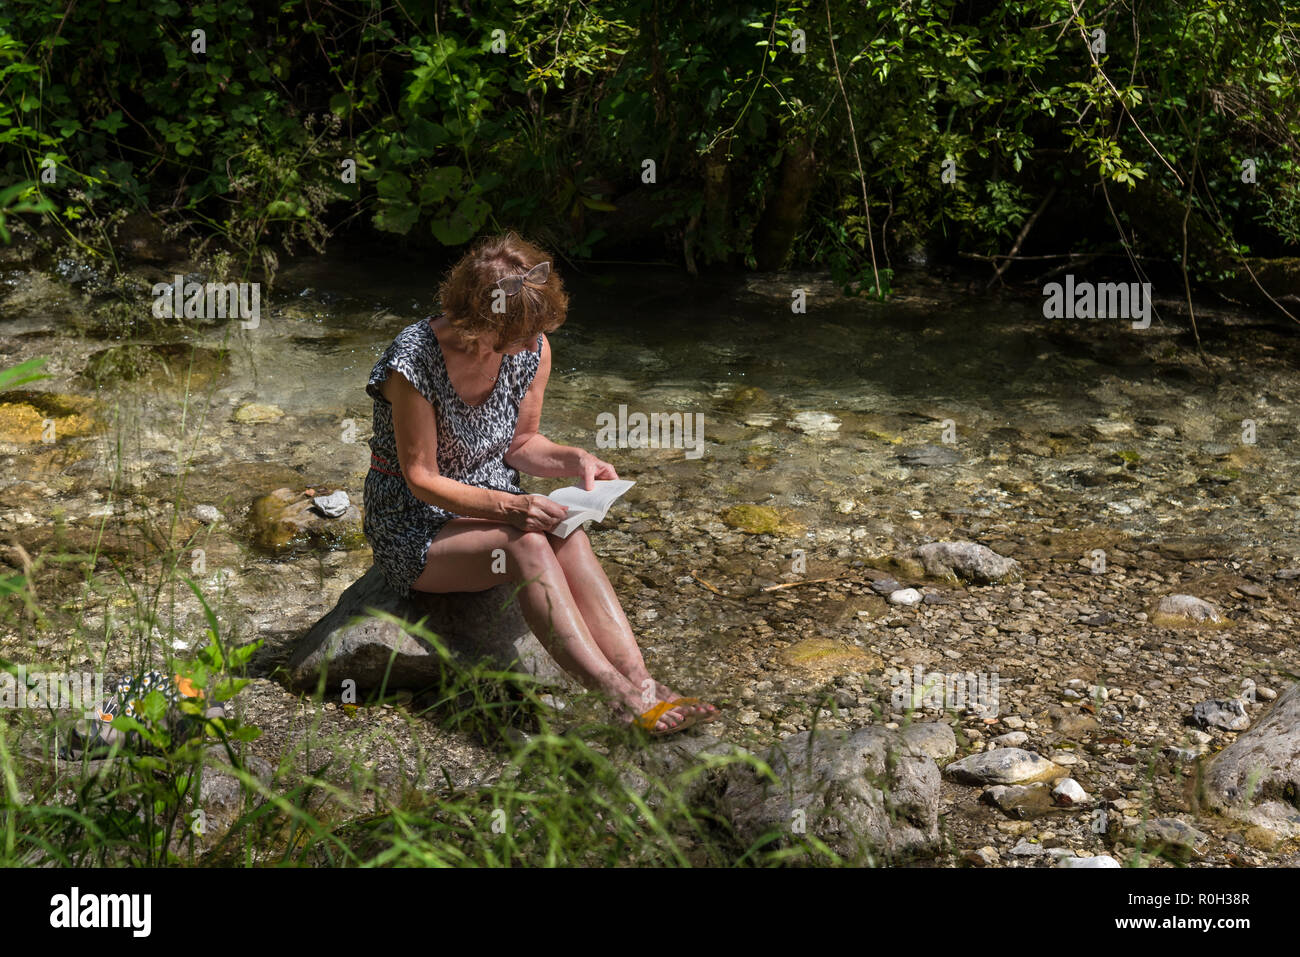 a woman reading a book in the middle of nature - Stock Image